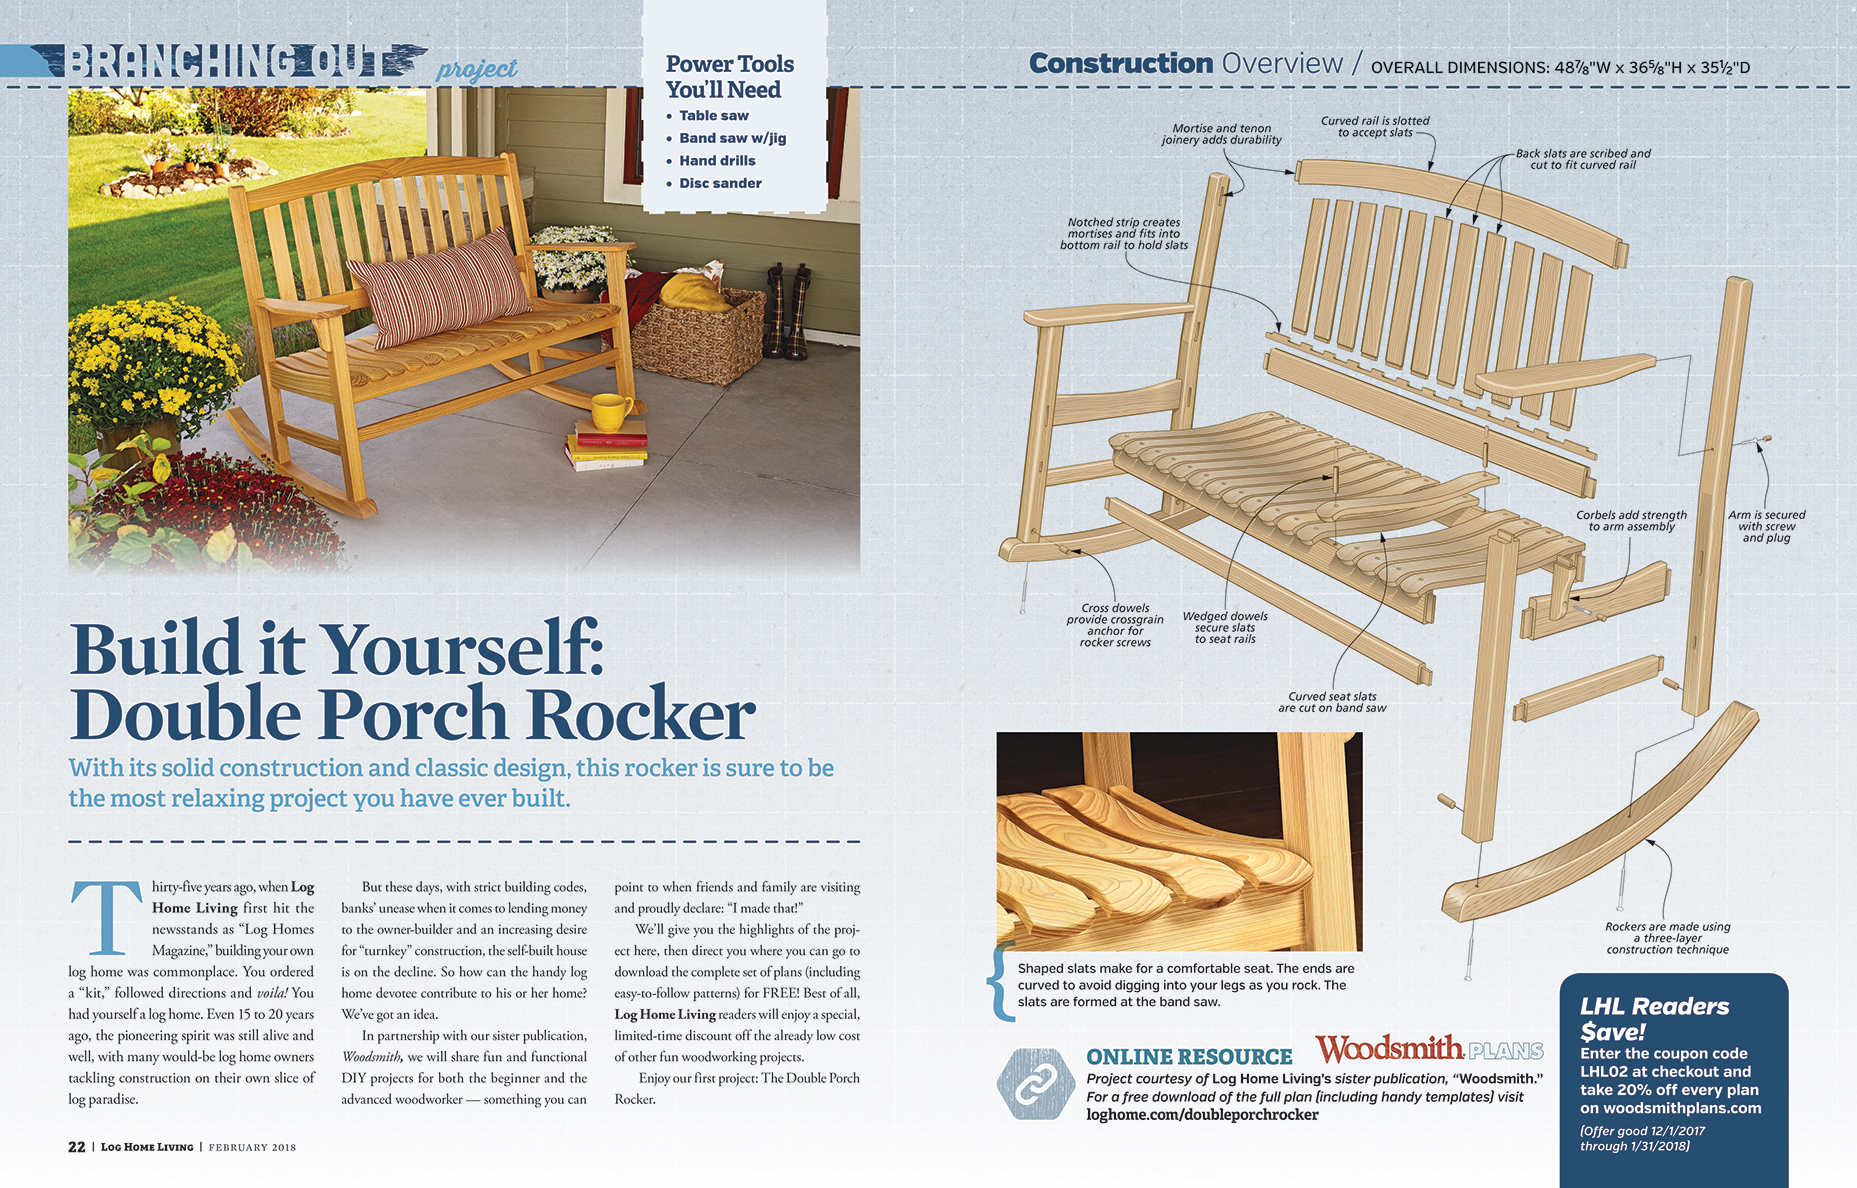 Build it Yourself: Double Porch Rocker